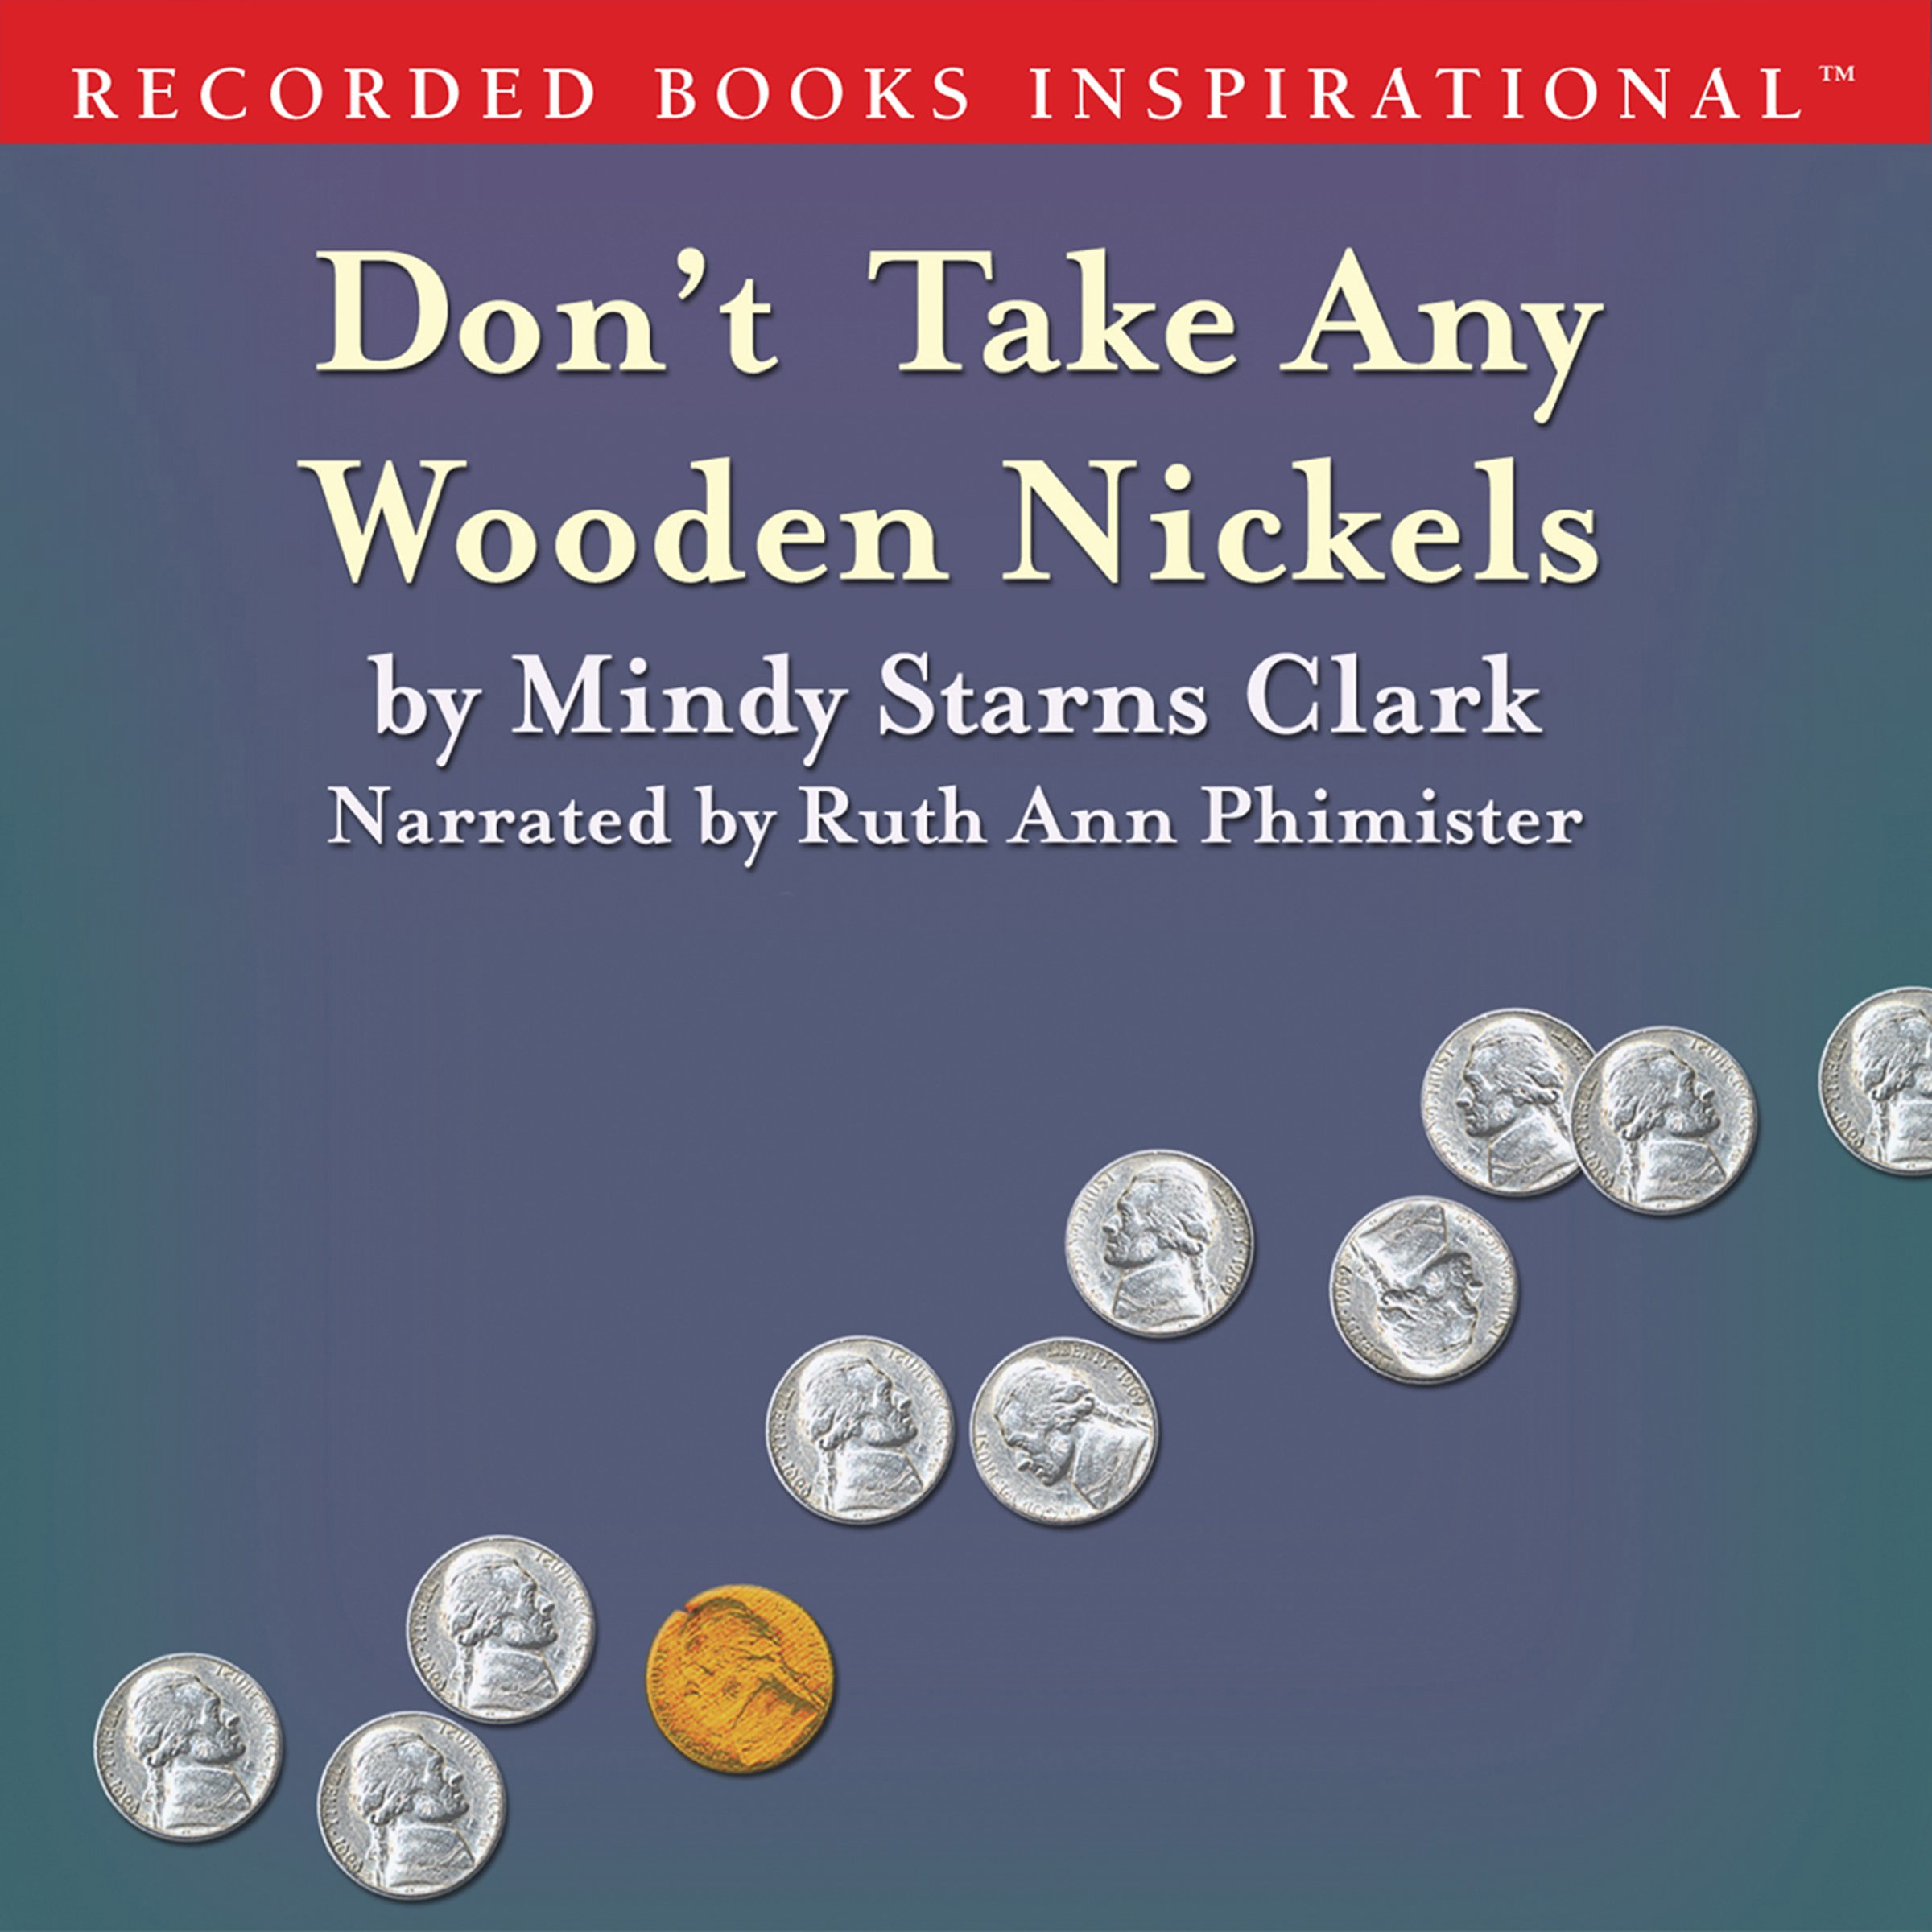 Don't Take Any Wooden Nickels: The Million Dollar Mysteries, Book 2